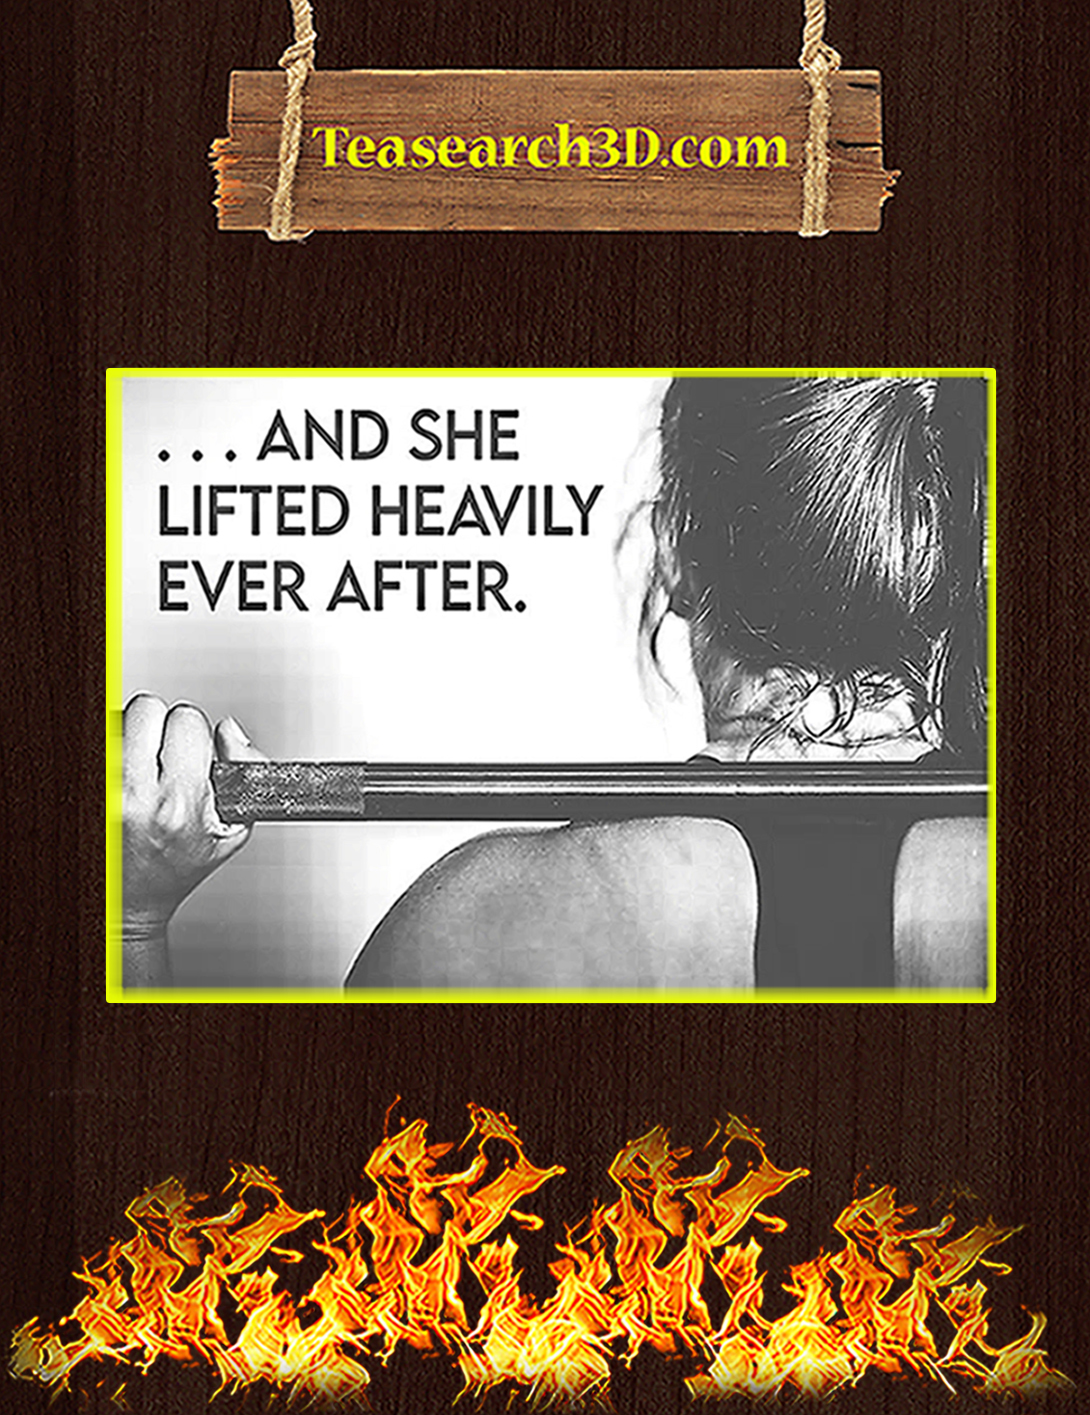 Fitness and she lifted heavily ever after poster A2